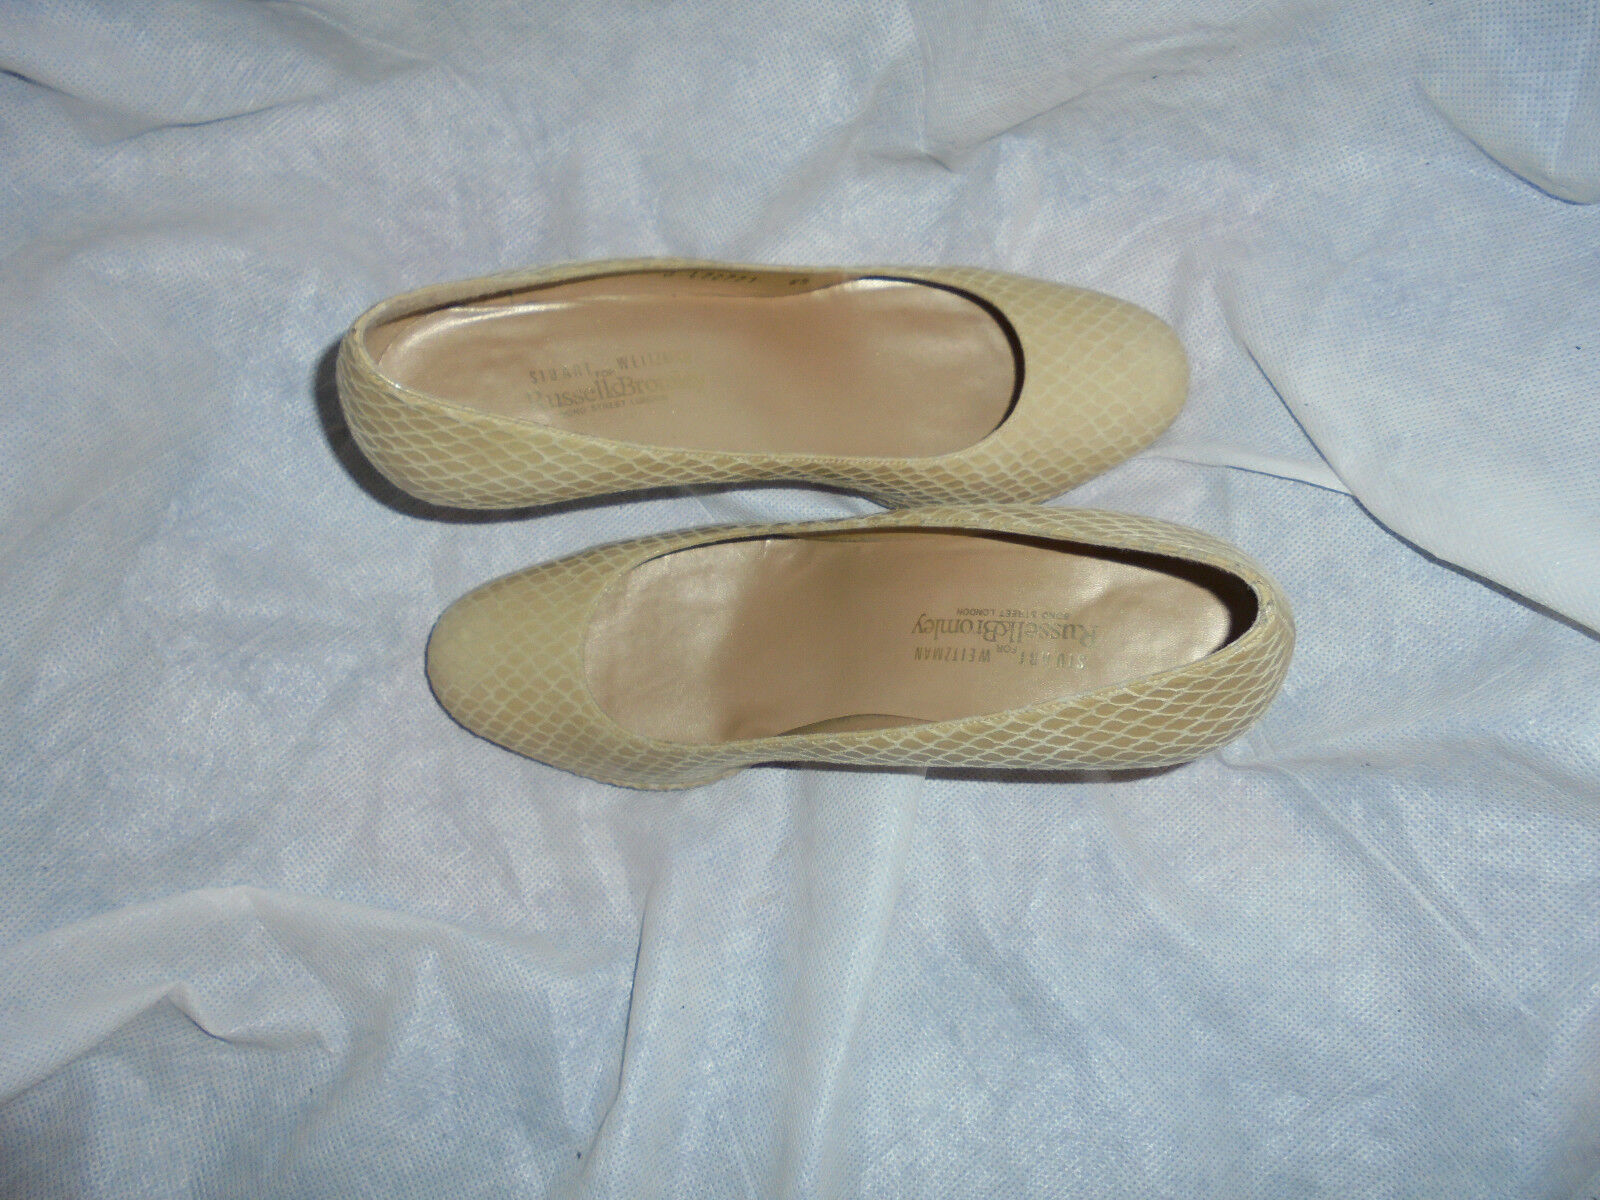 RUSSELL & BROMLEY BY SW WOMEN BEIGE LEATHER SLIP ON SHOE SIZE UK6. 5 EU 39.5 VGC